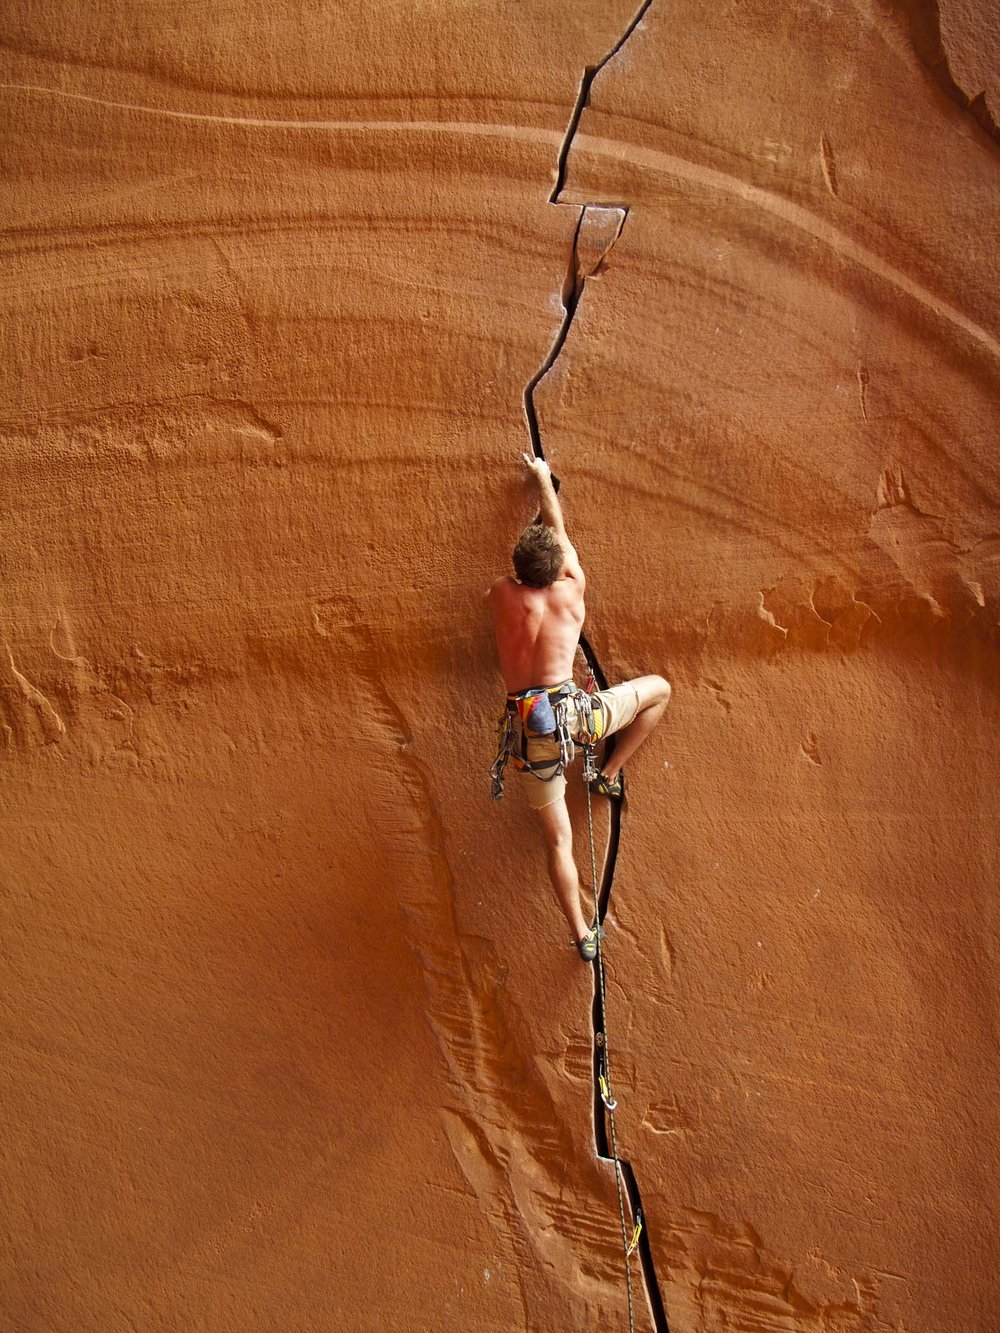 Jeffrey Snider climbing on the route 'Anunnaki.'